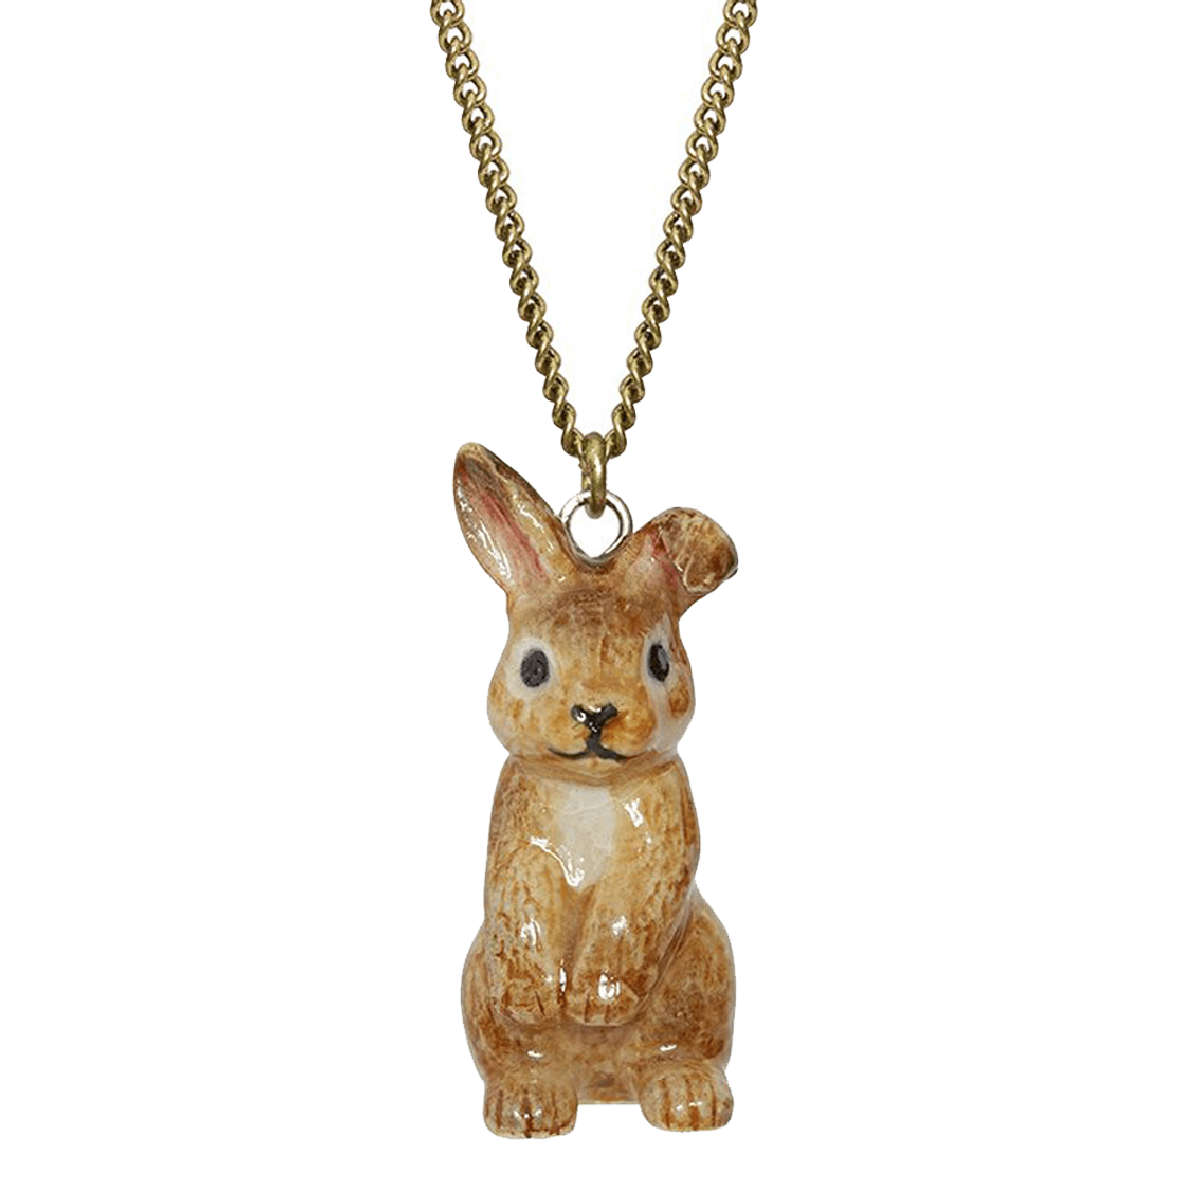 And Mary, collier pendentif en porcelaine Lapin brun assis - cassisroyal.com